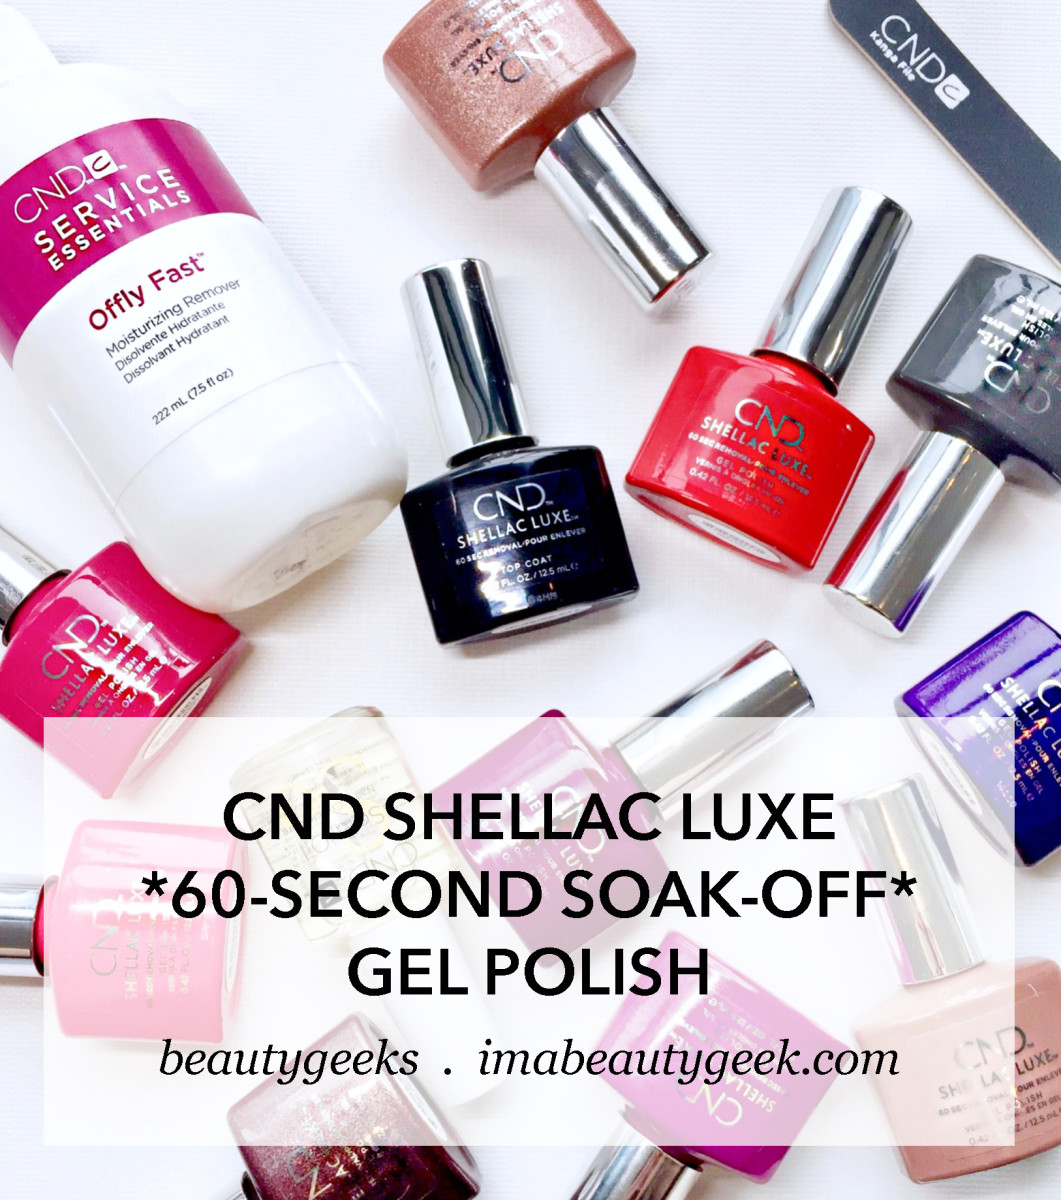 Cnd Shellac Luxe A Speedy Salon Mani With A 60 Second Soak Off